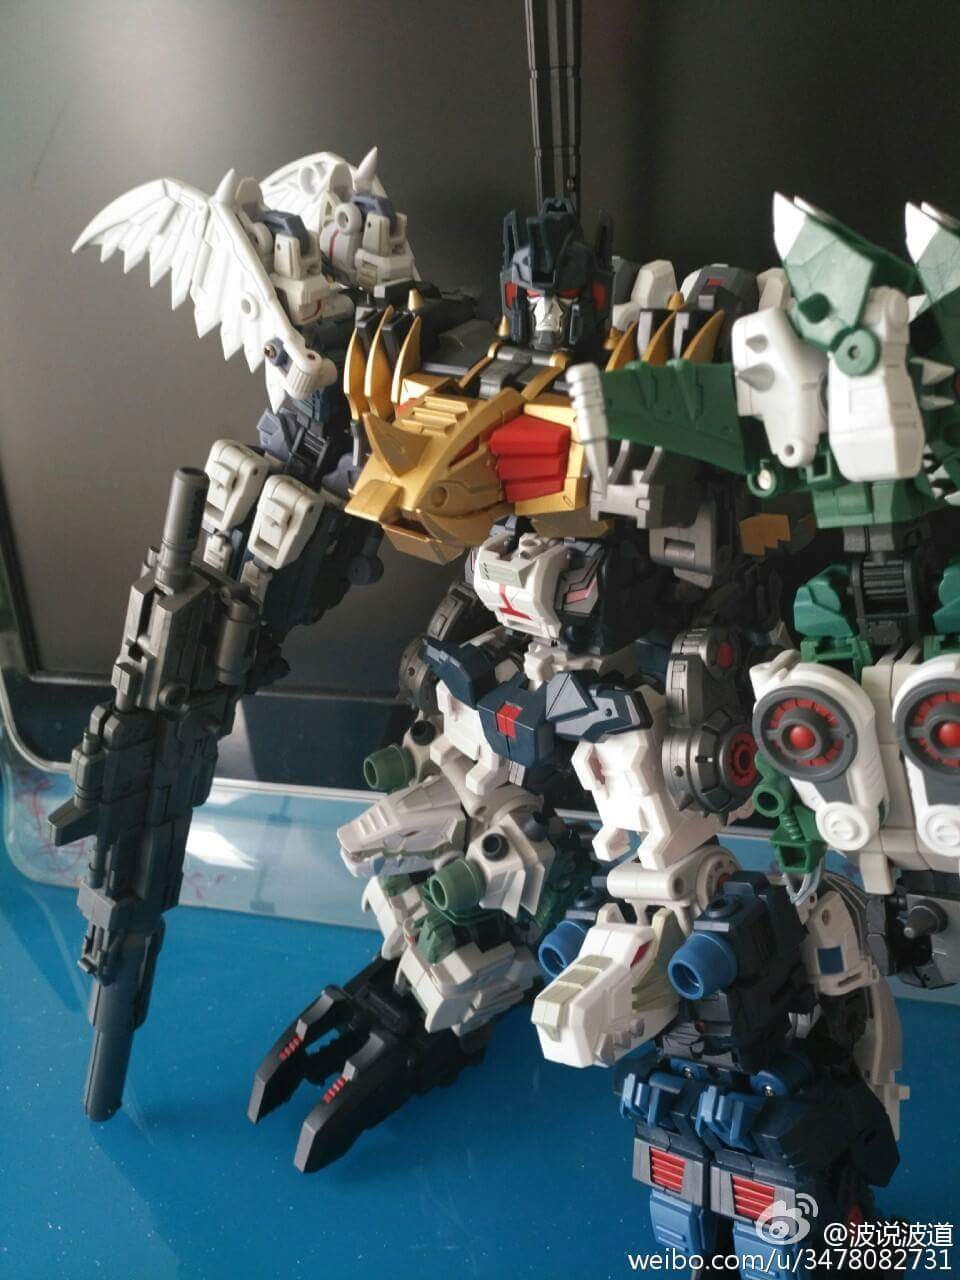 [FansProject] Produit Tiers - Jouet Saurus Ryu-oh aka Dinoking (Victory) | Monstructor (USA) - Page 2 MXsVzv2l